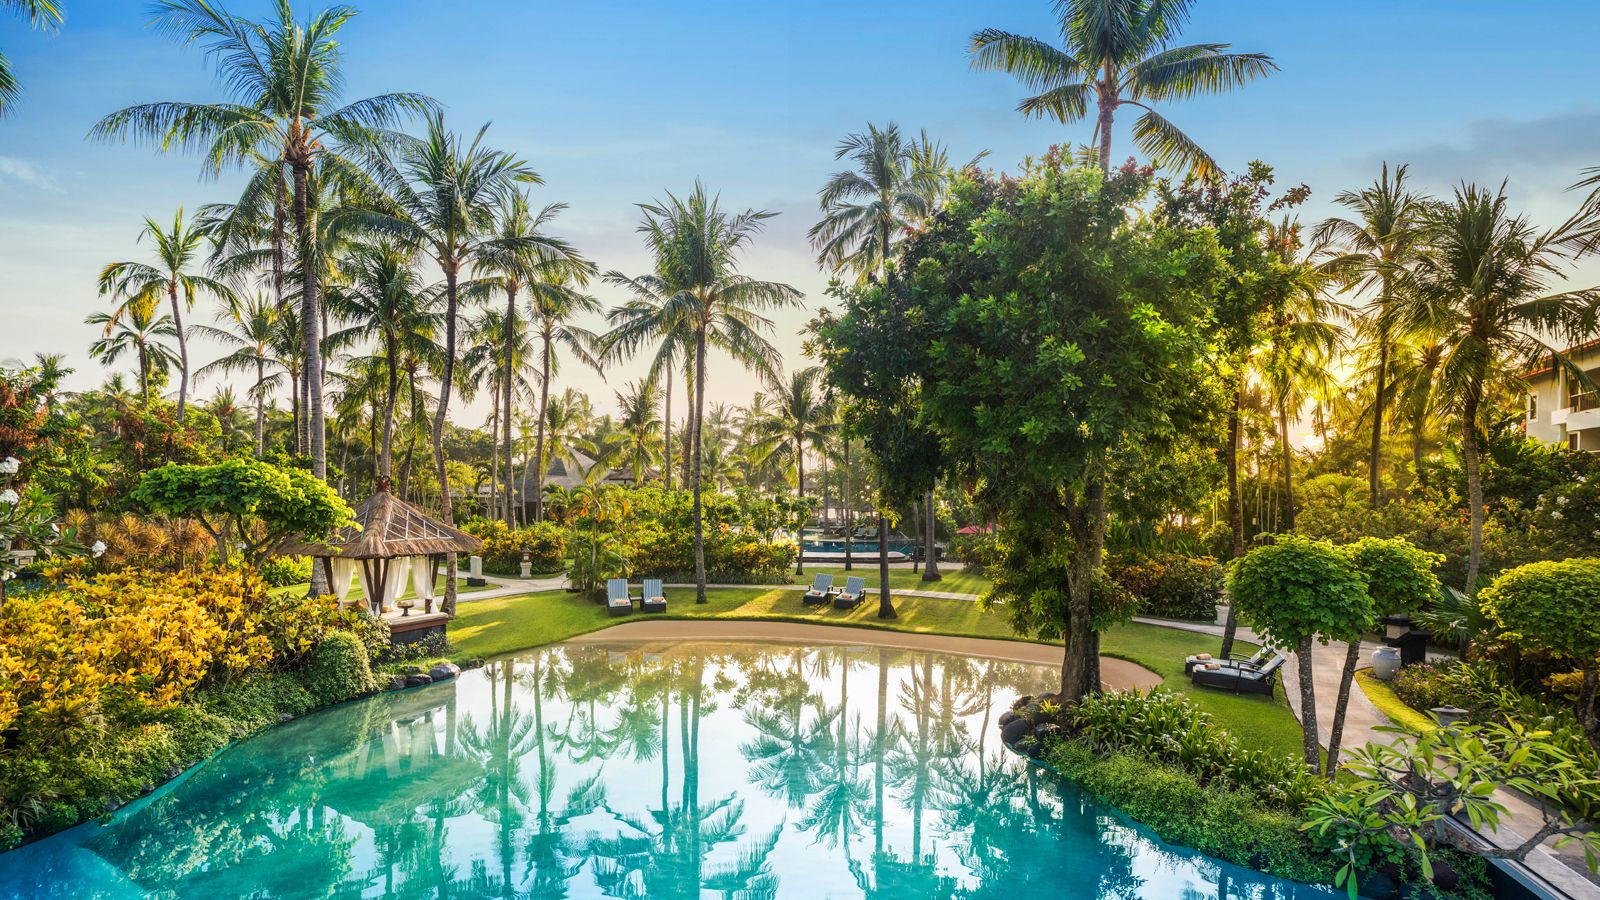 Sparkling Blue Lagoon at The Laguna Bali Resort & Spa